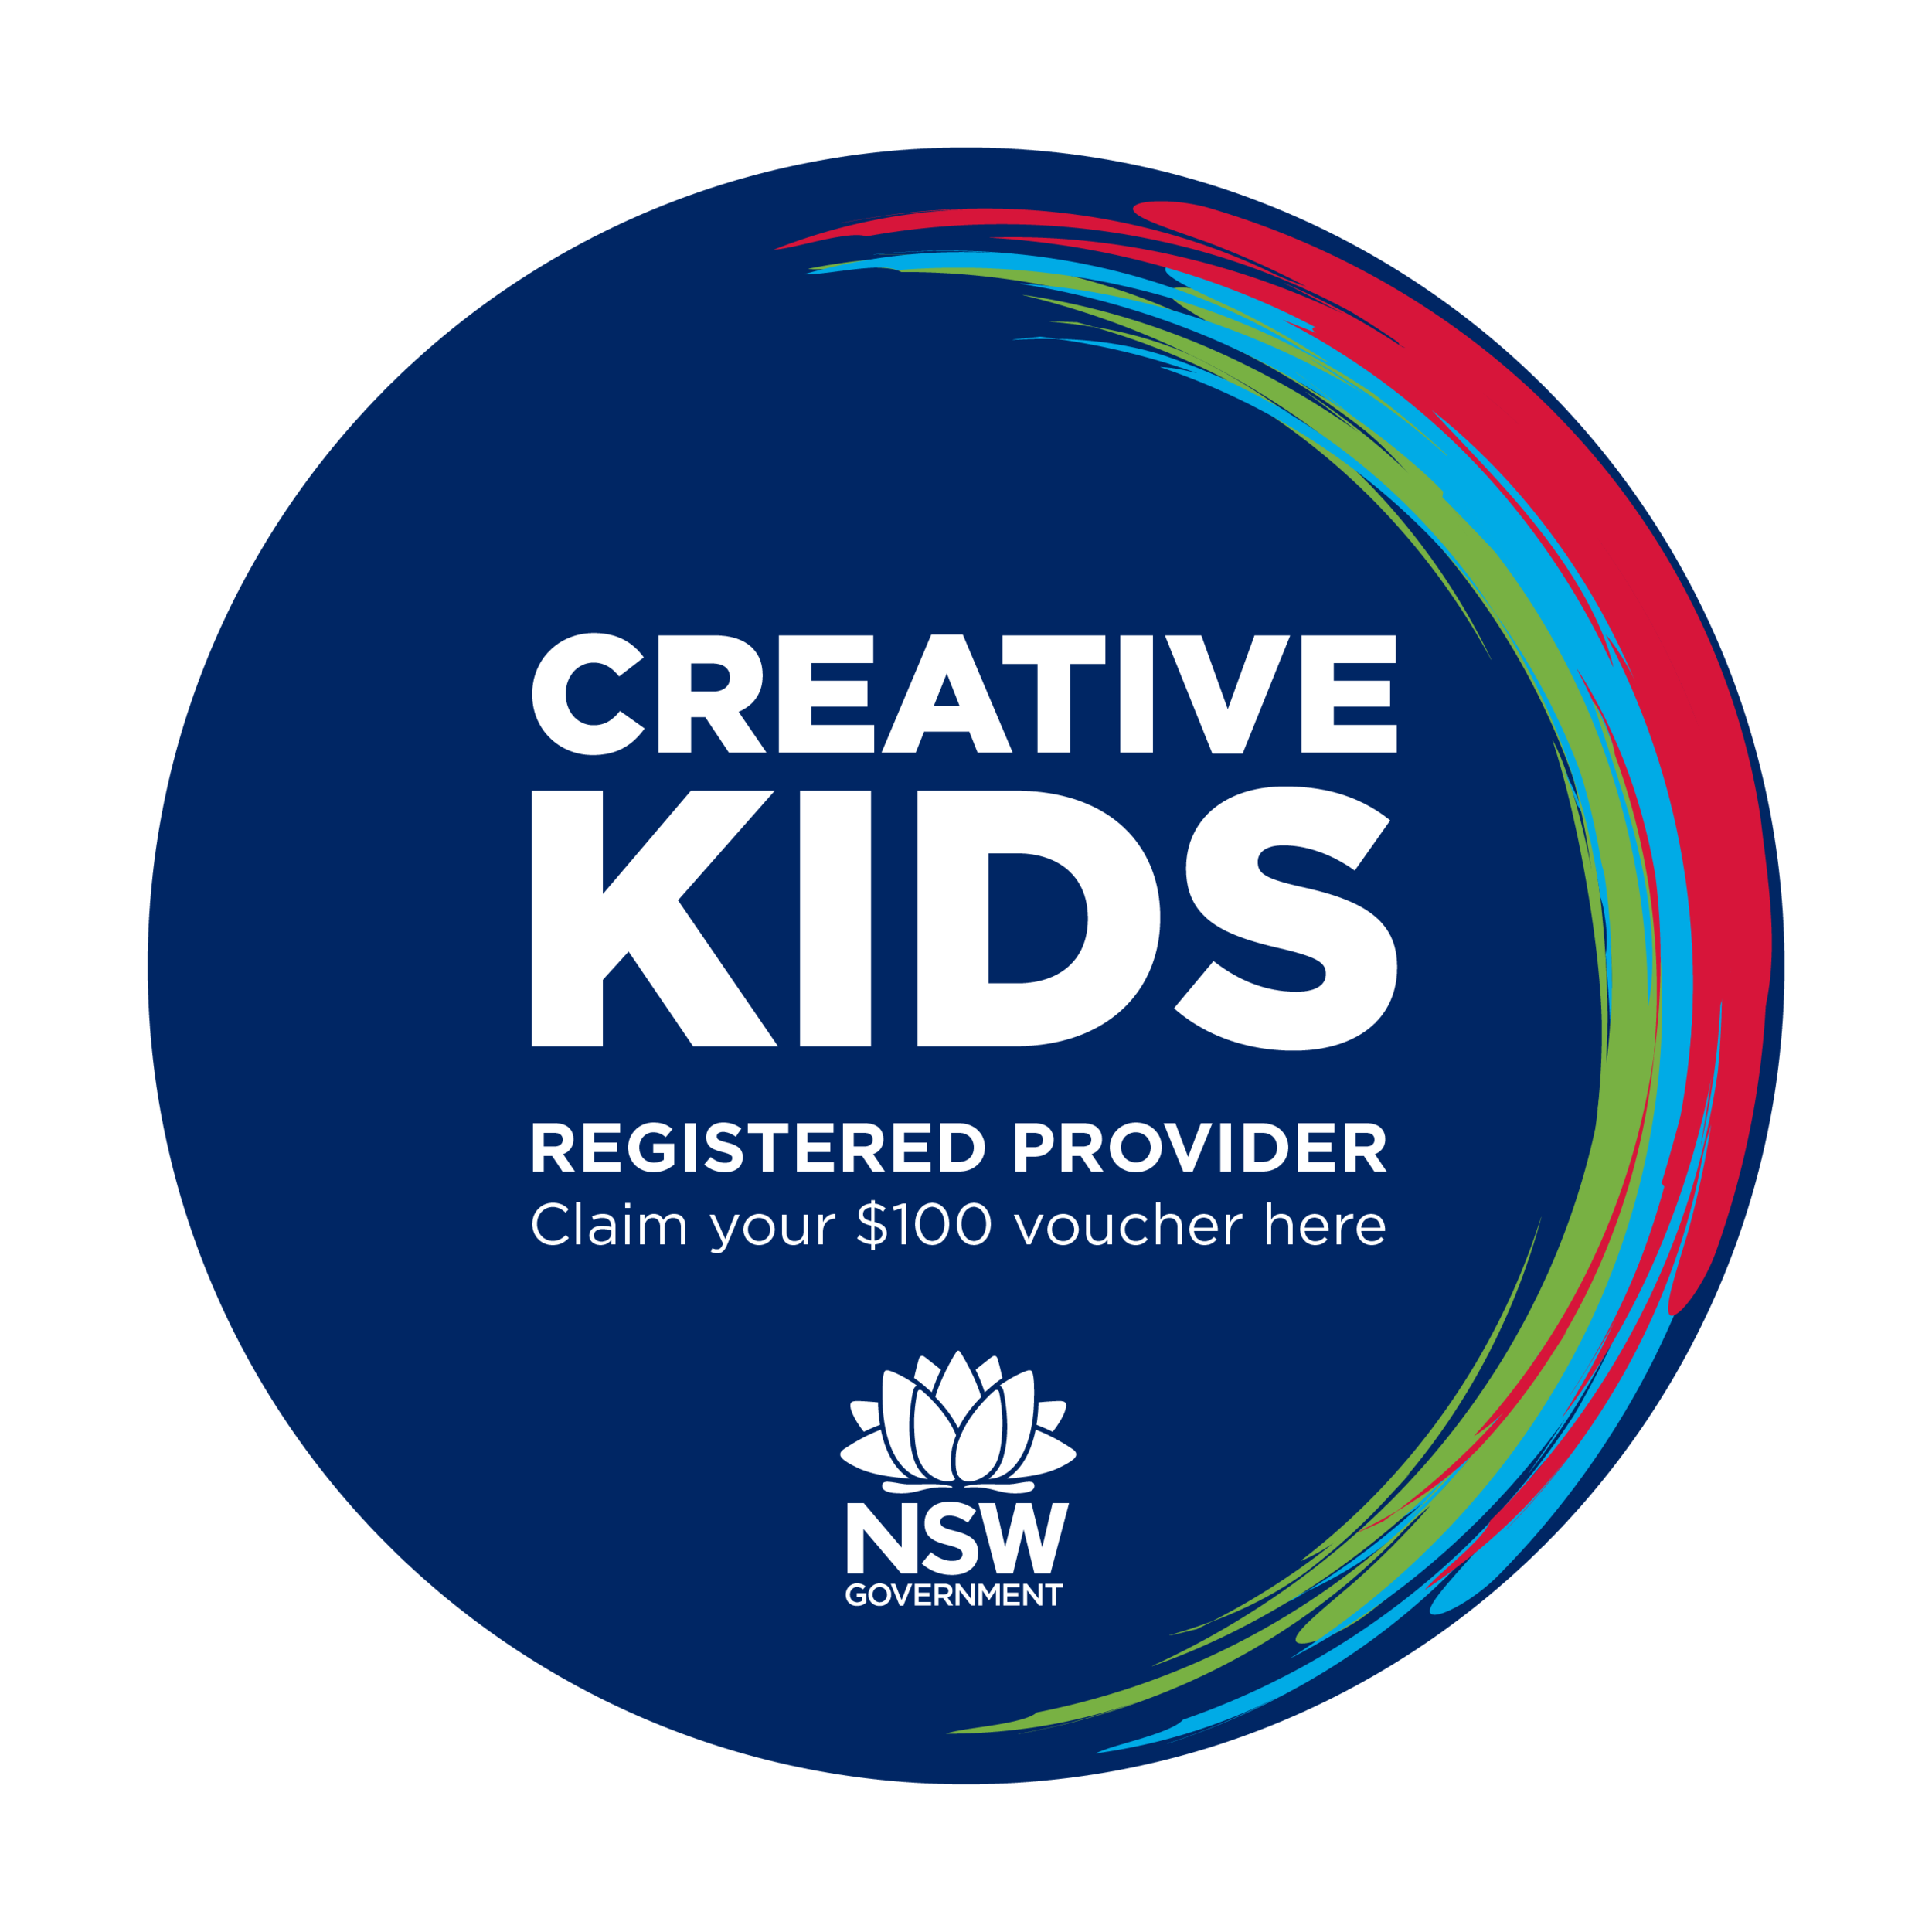 Claim your $100 Creative Kids Voucher - We are now a registered provider for Creative Kids Voucher. Claim your rebate through Services NSW portal and contact us to process your $100 rebate.